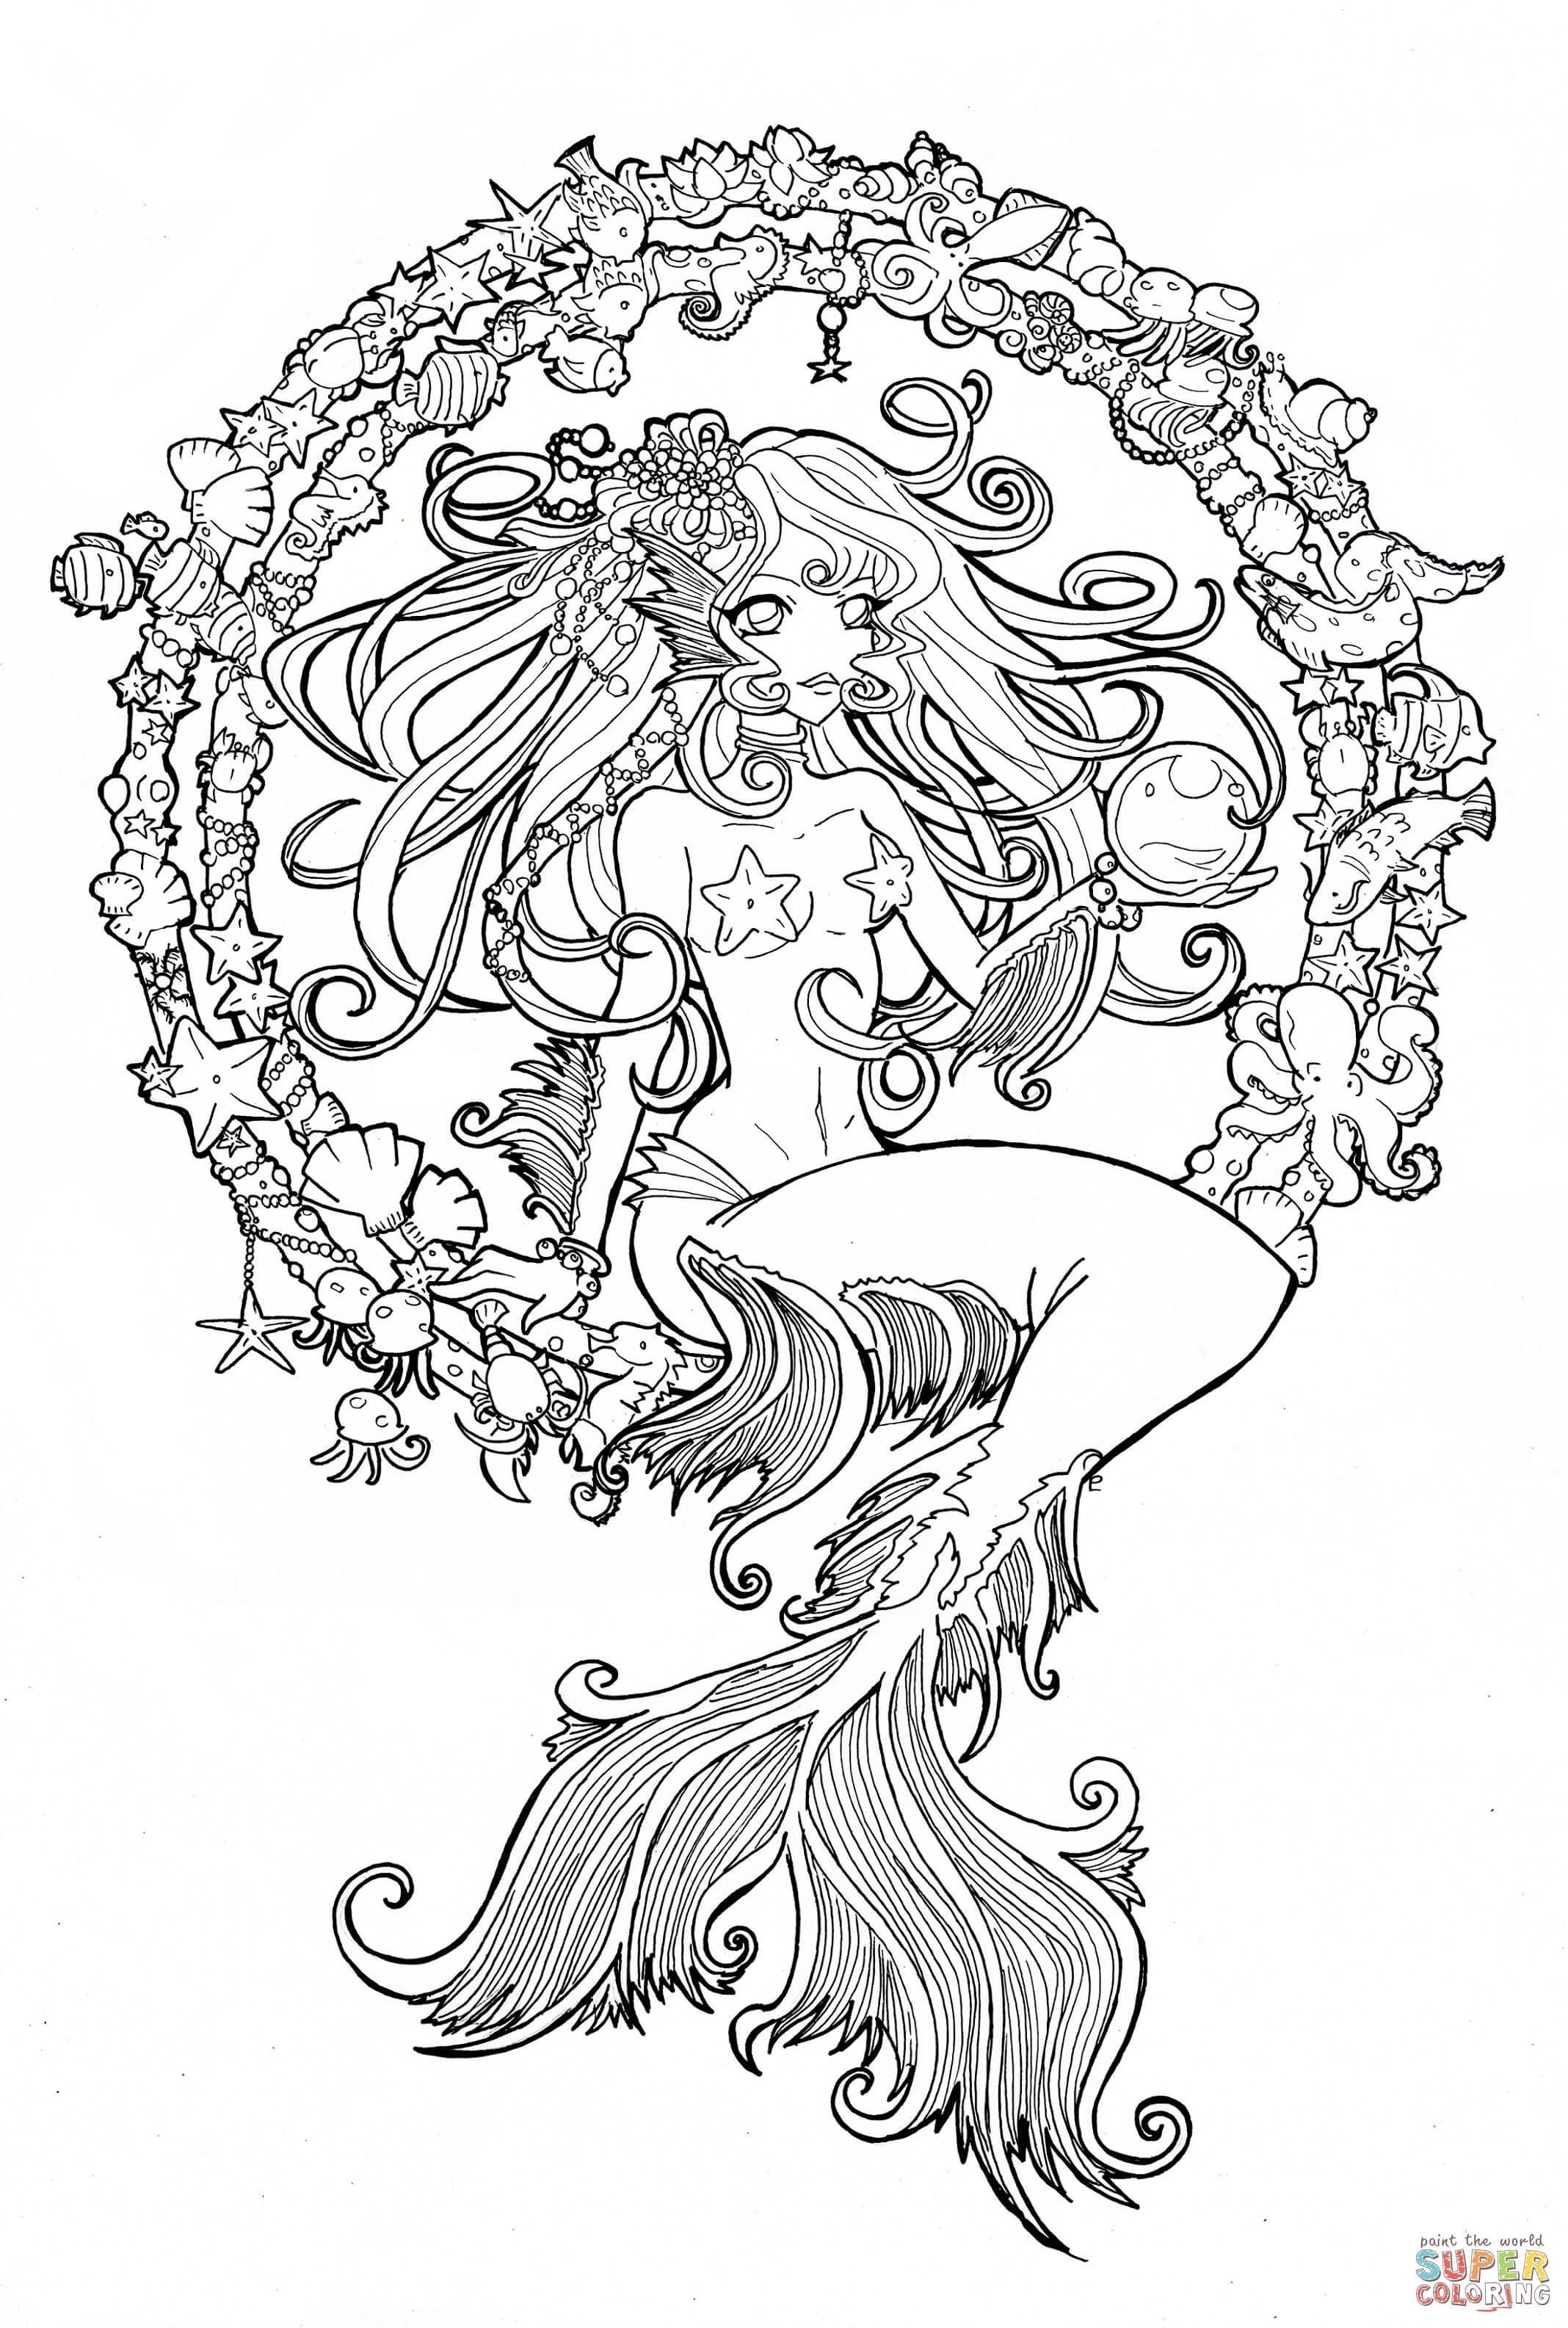 Cordelia Jewel Of The Sea Coloring Page From Anime Girls Category